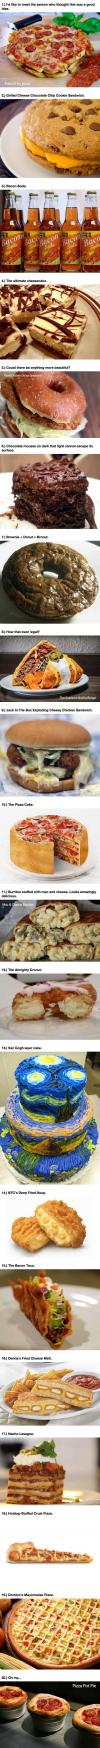 20 foods that will put your diet at risk, food porn, pizza